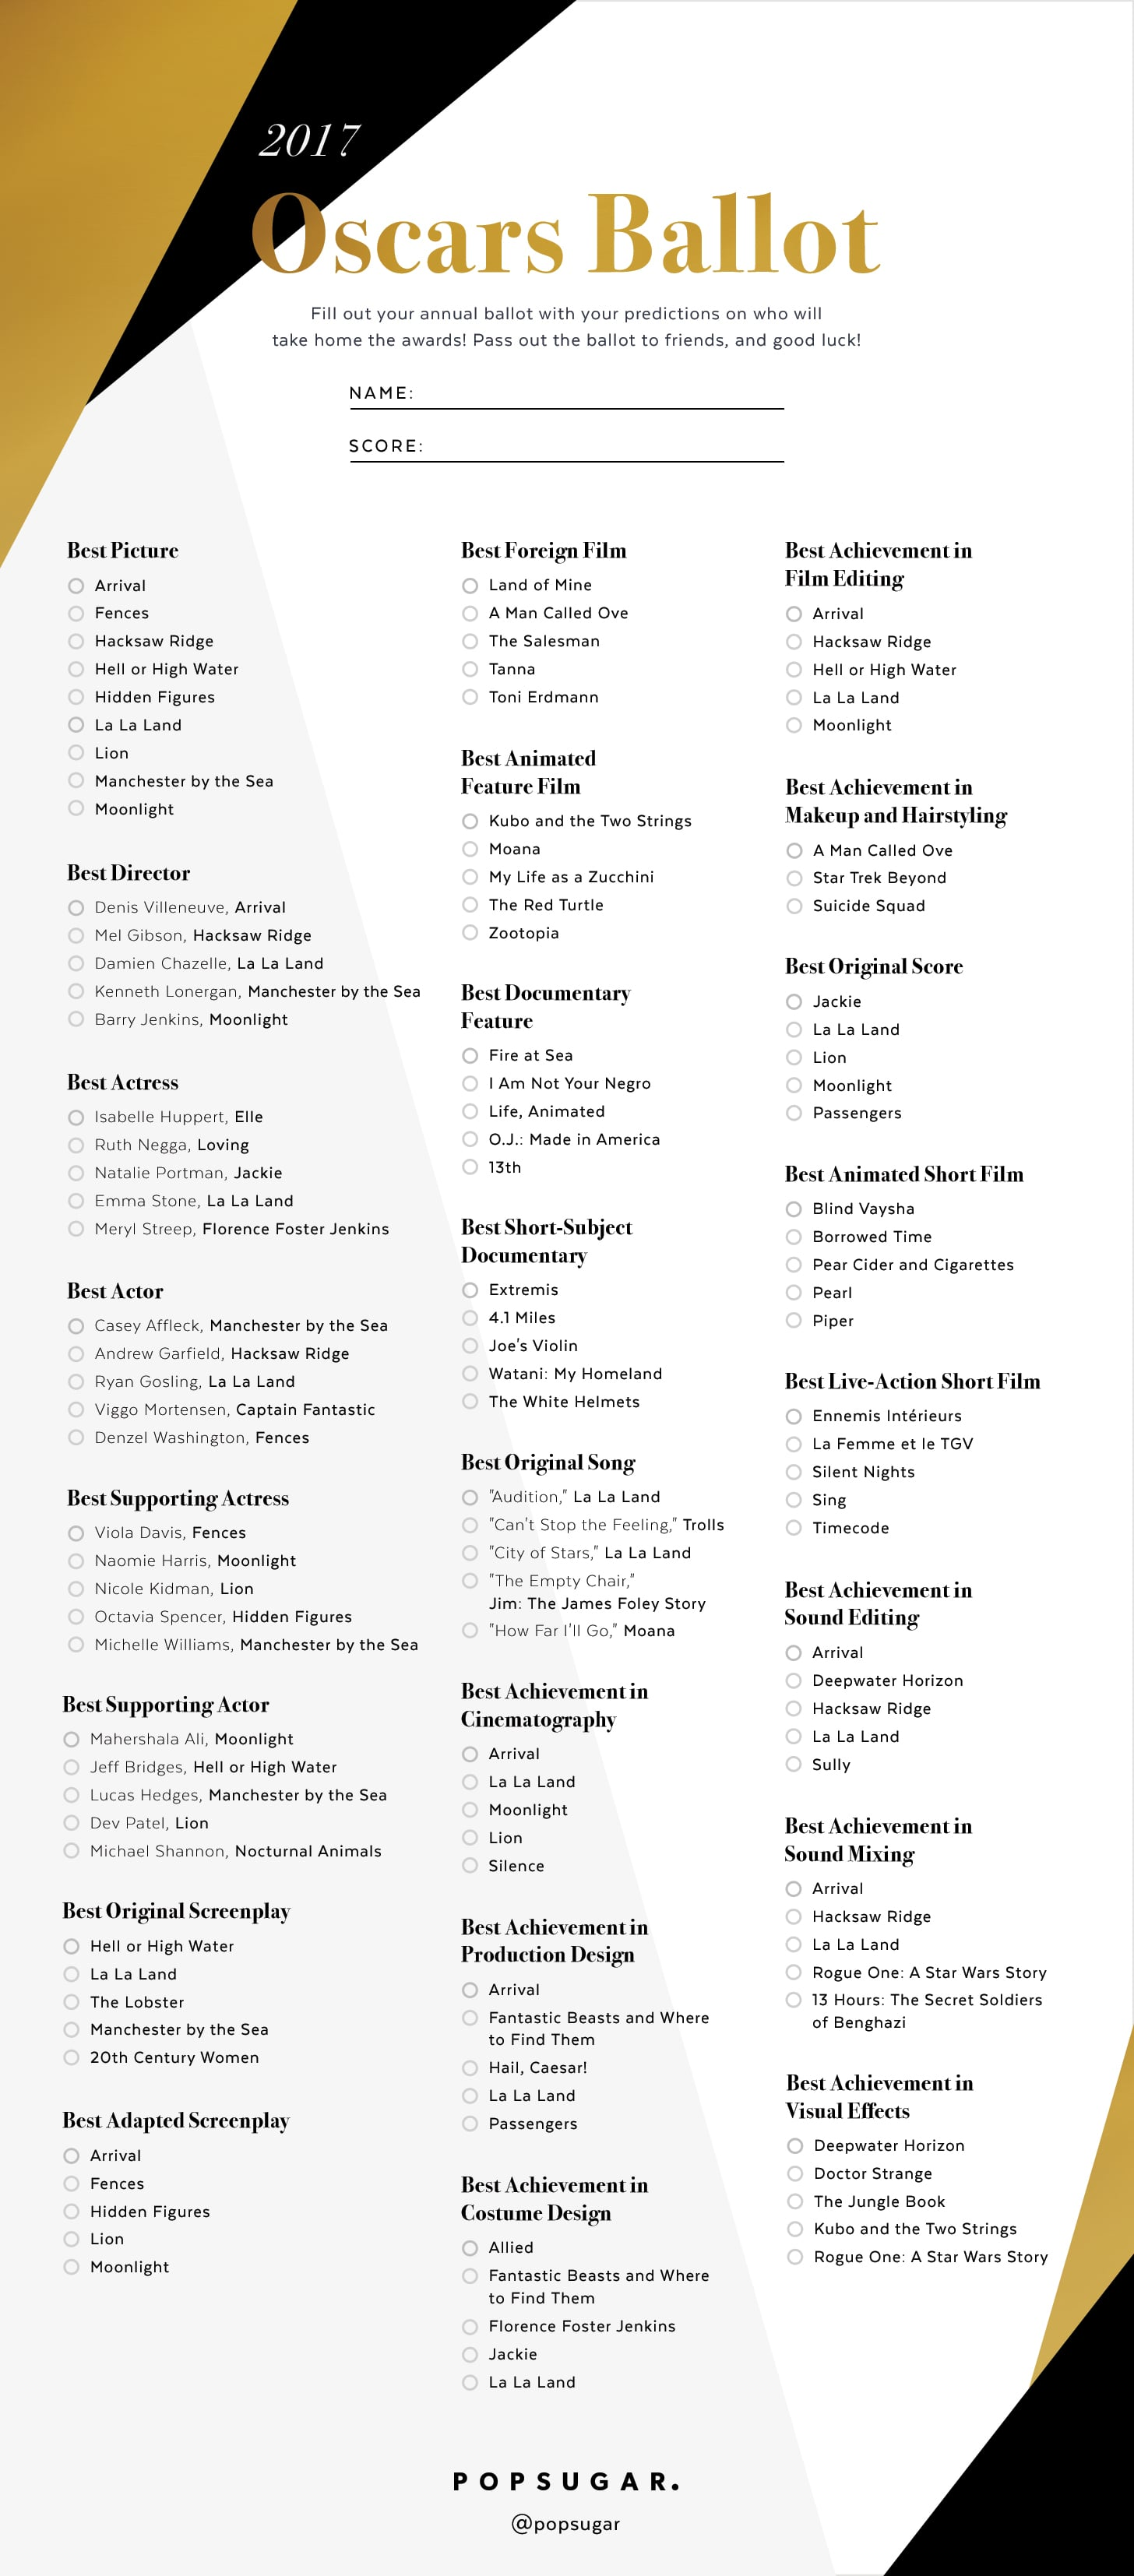 photo about Oscar Ballots Printable identified as Printable Oscars Ballot 2017 POPSUGAR Enjoyment